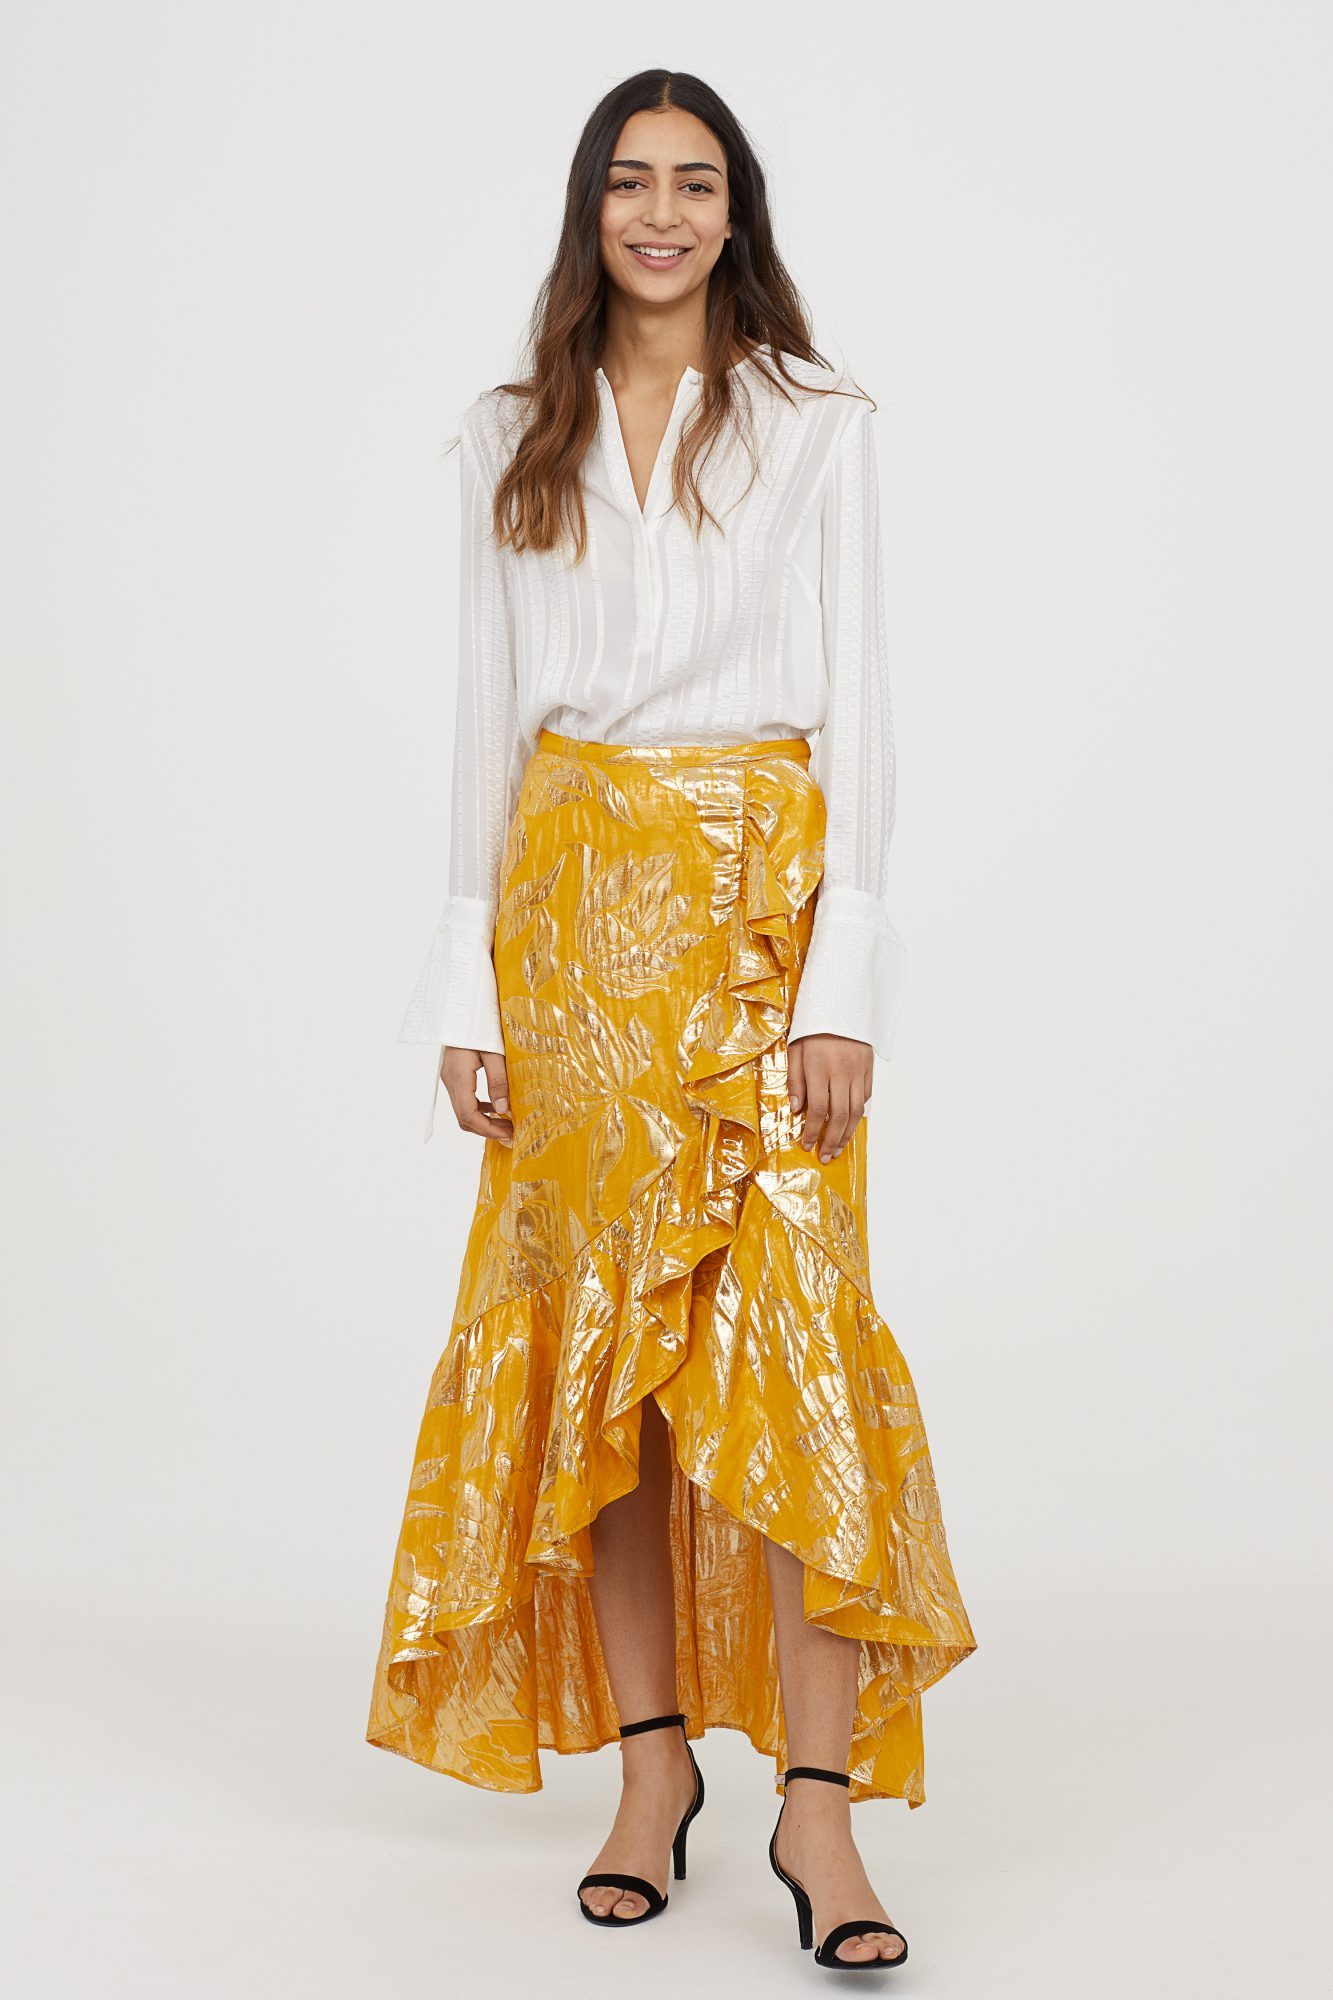 H&M Yellow Wrap Skirt